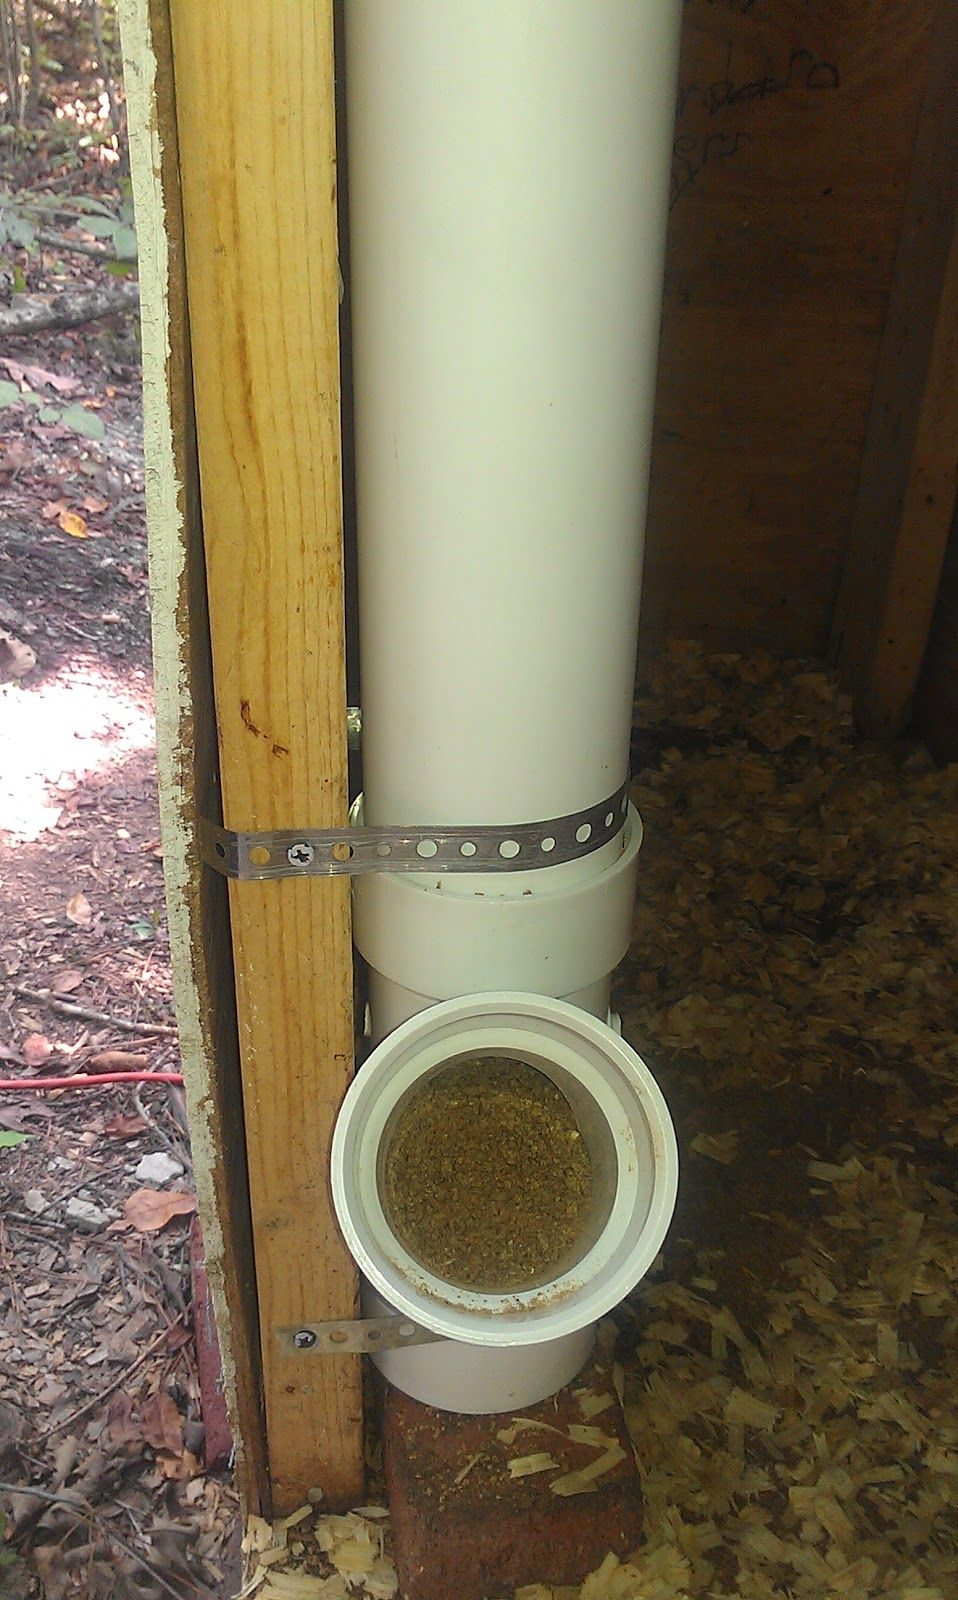 Diy Chicken Feeder Chicken Feeder Diy Chicken Diy Chicken Feeder